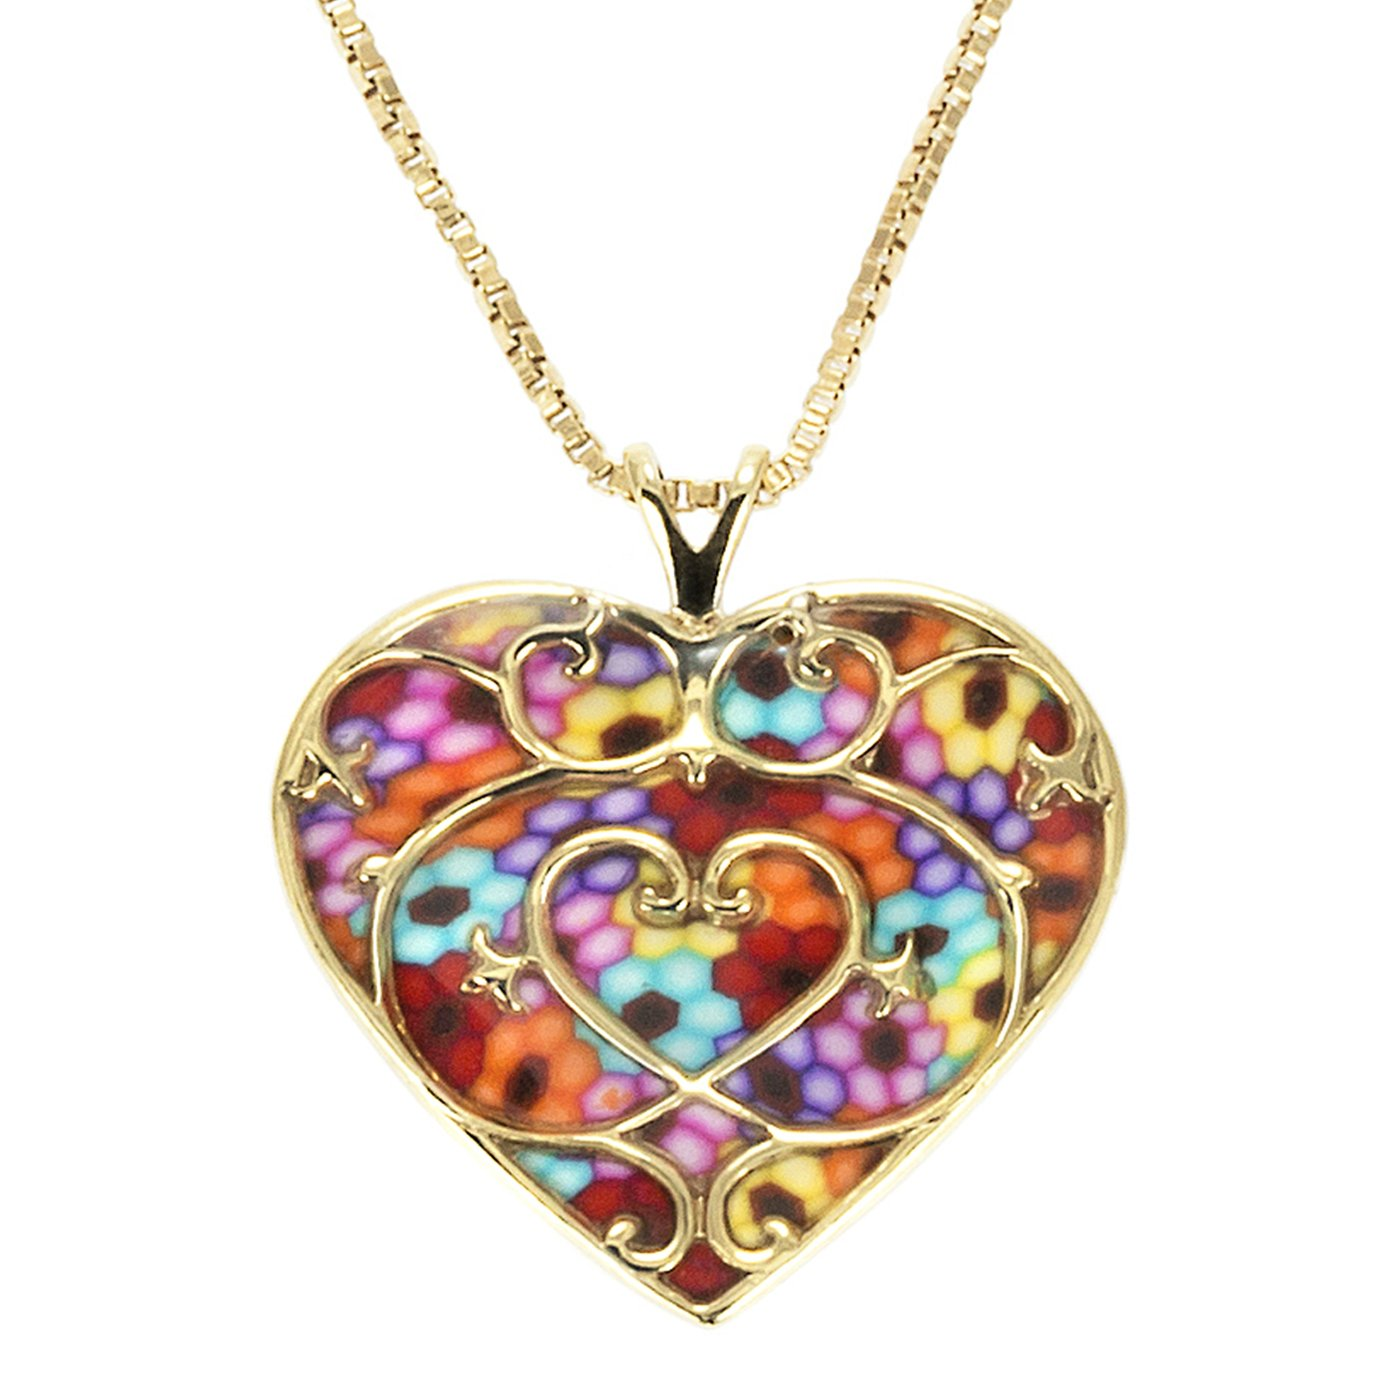 Gold Plated Sterling Silver Heart Pendant Fleur de Lis Necklace Handmade Multi-Colored Polymer Clay Jewelry, 16.5'' Gold Filled Chain